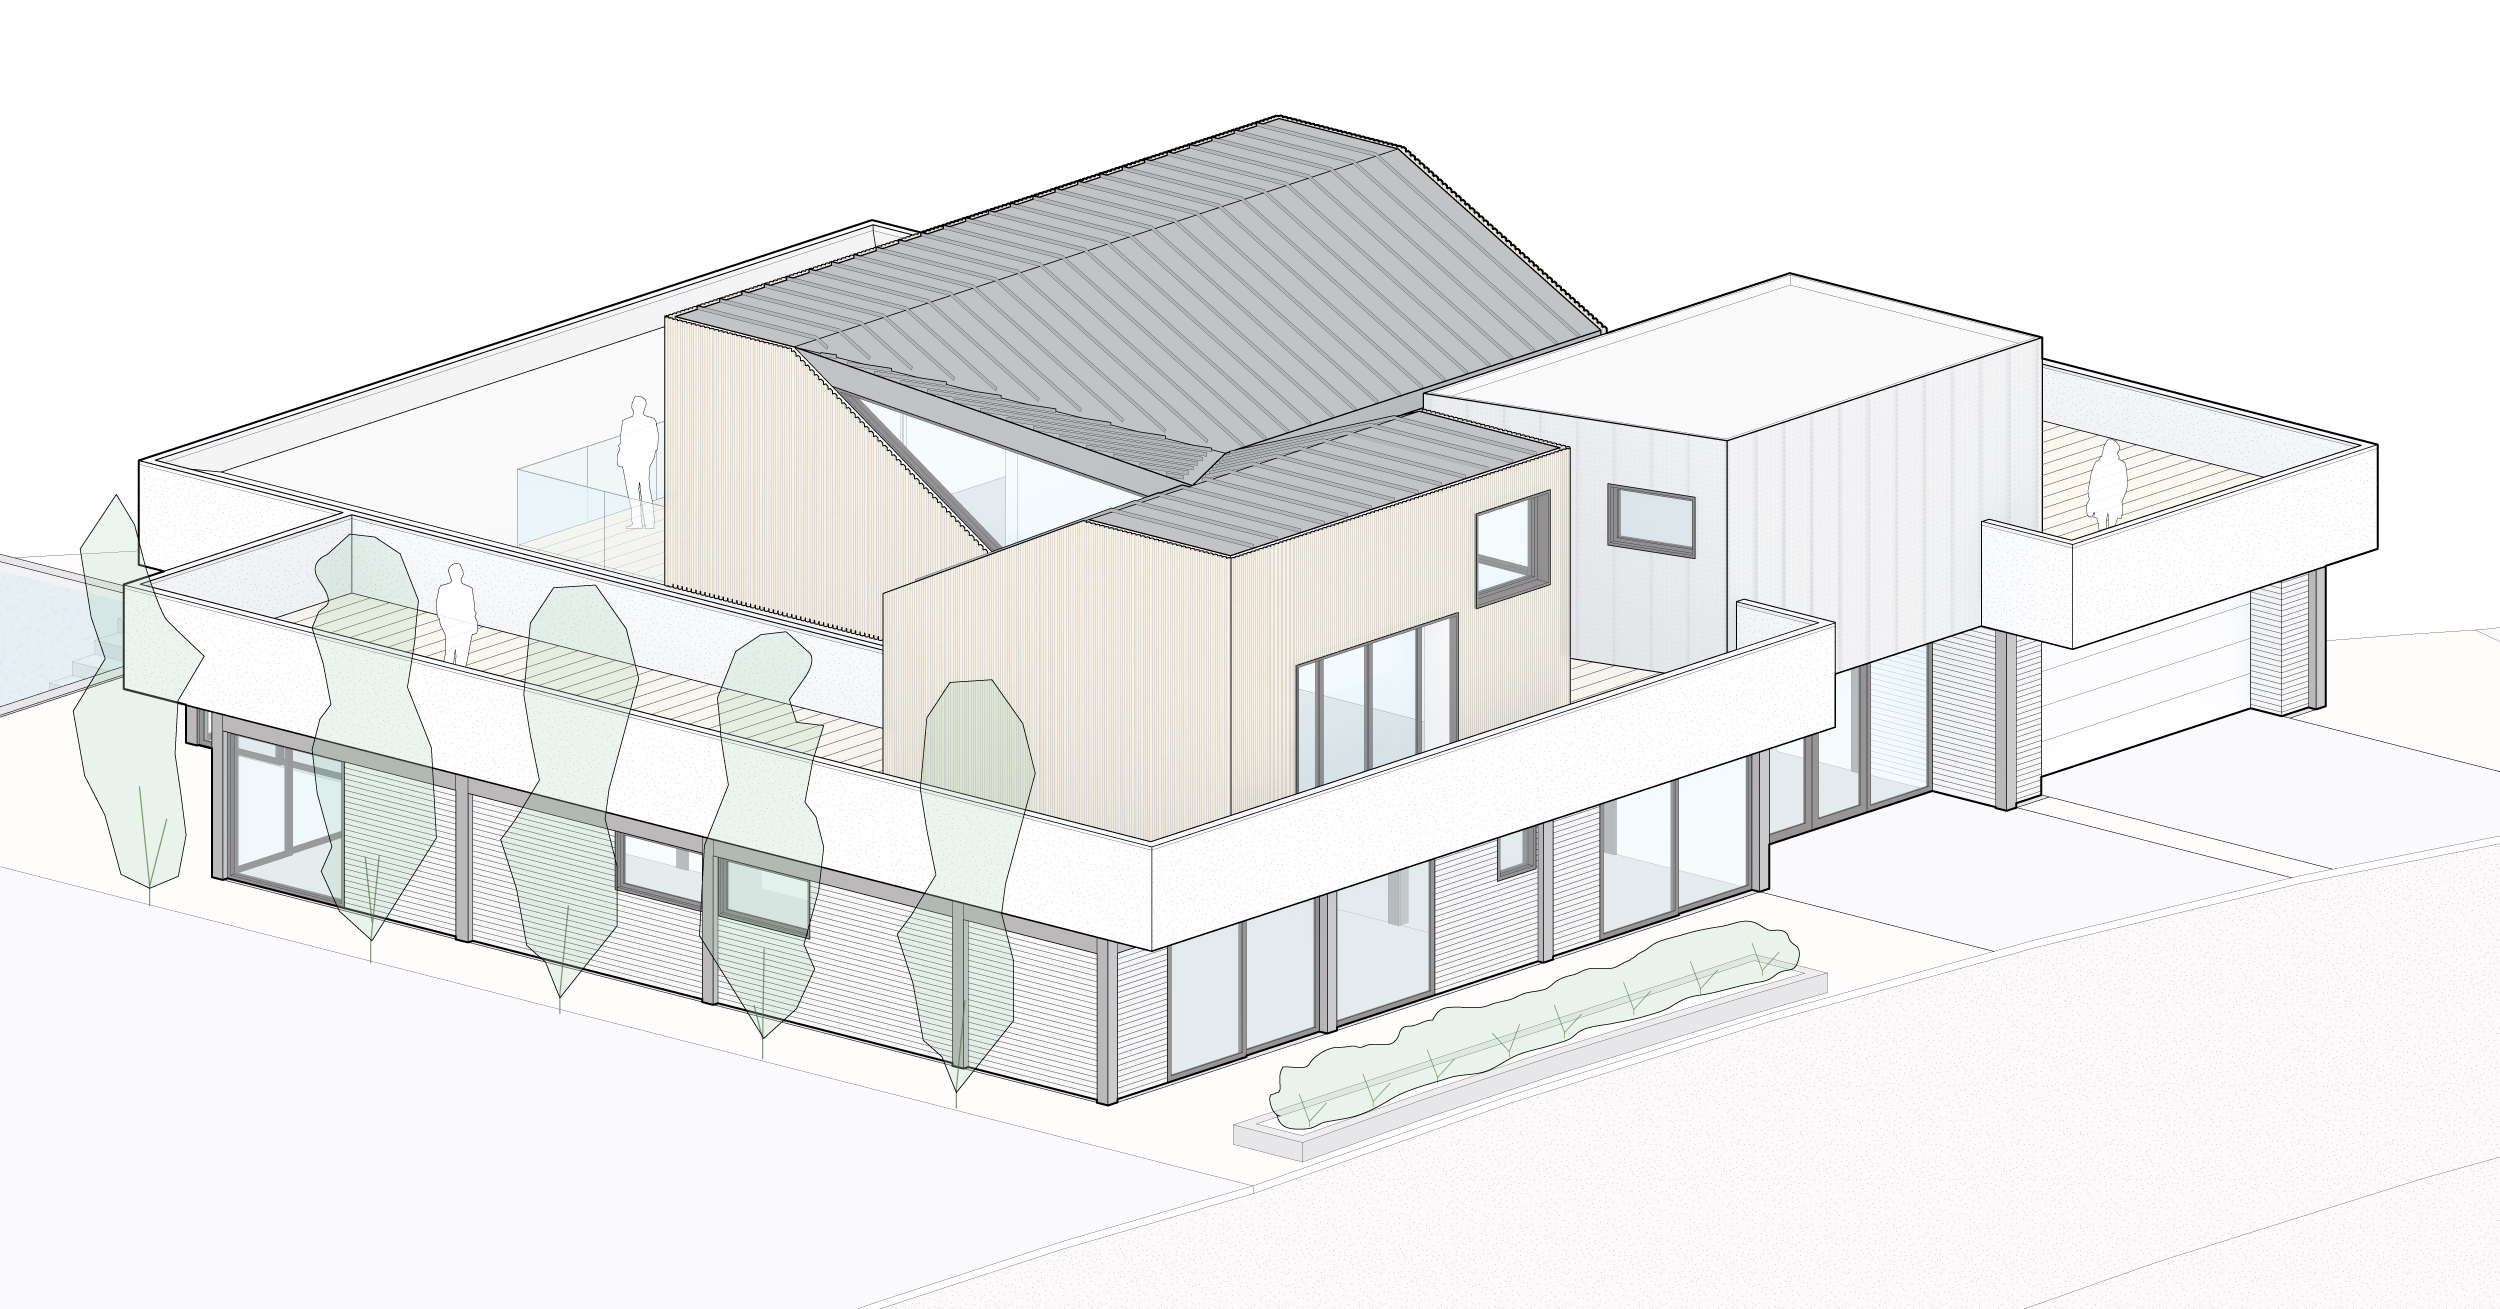 Isometric showing the cedar and metal clad bedrooms with the living space below.